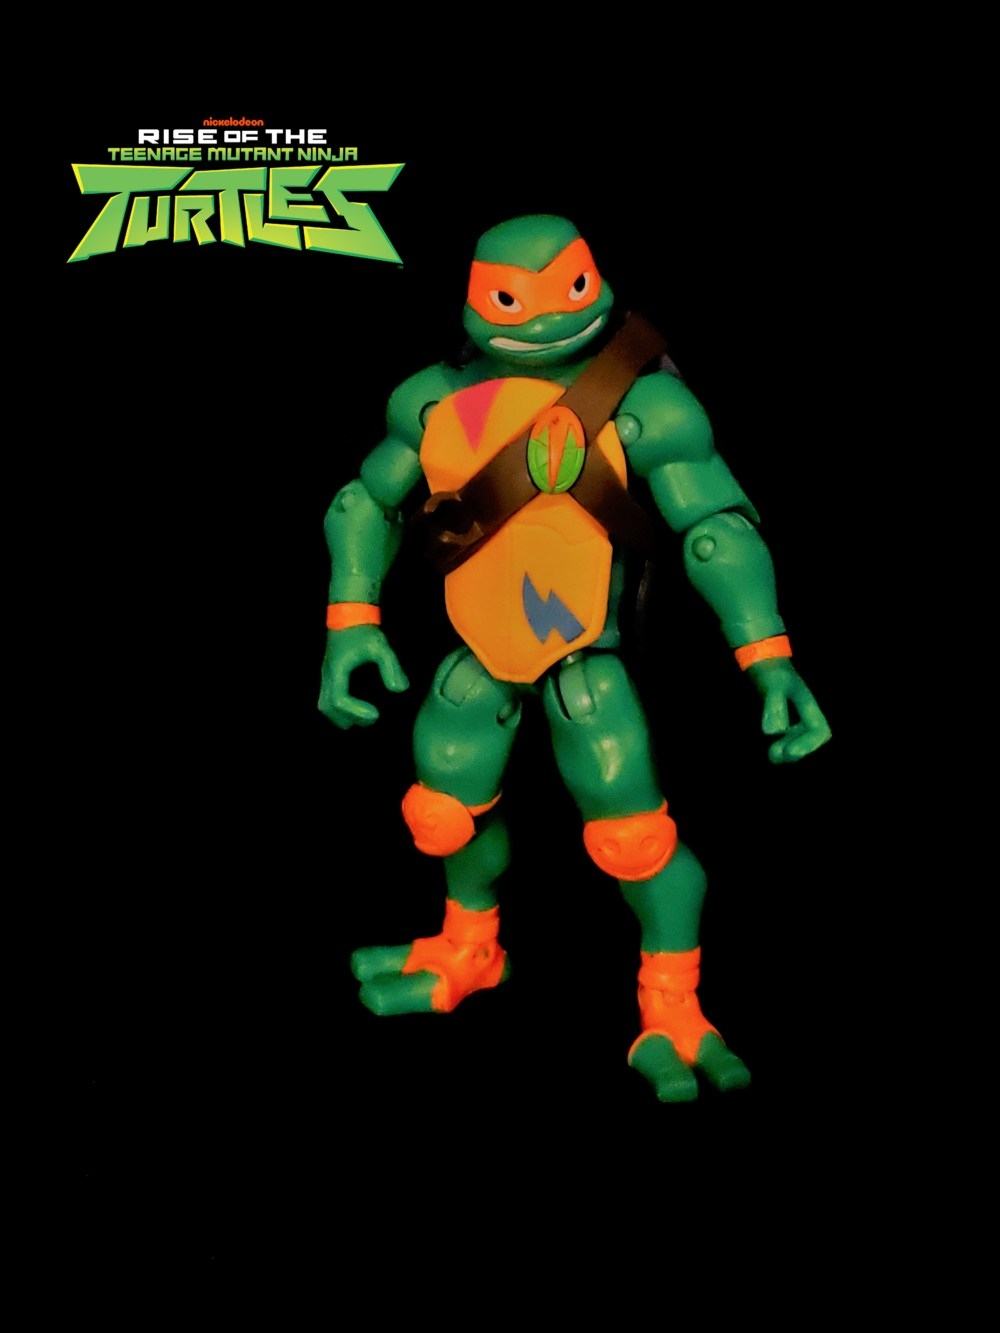 Mikey Action Figure-Rise of the Teenage Mutant Ninja Turtles Teenage Mutant Ninja Turtles